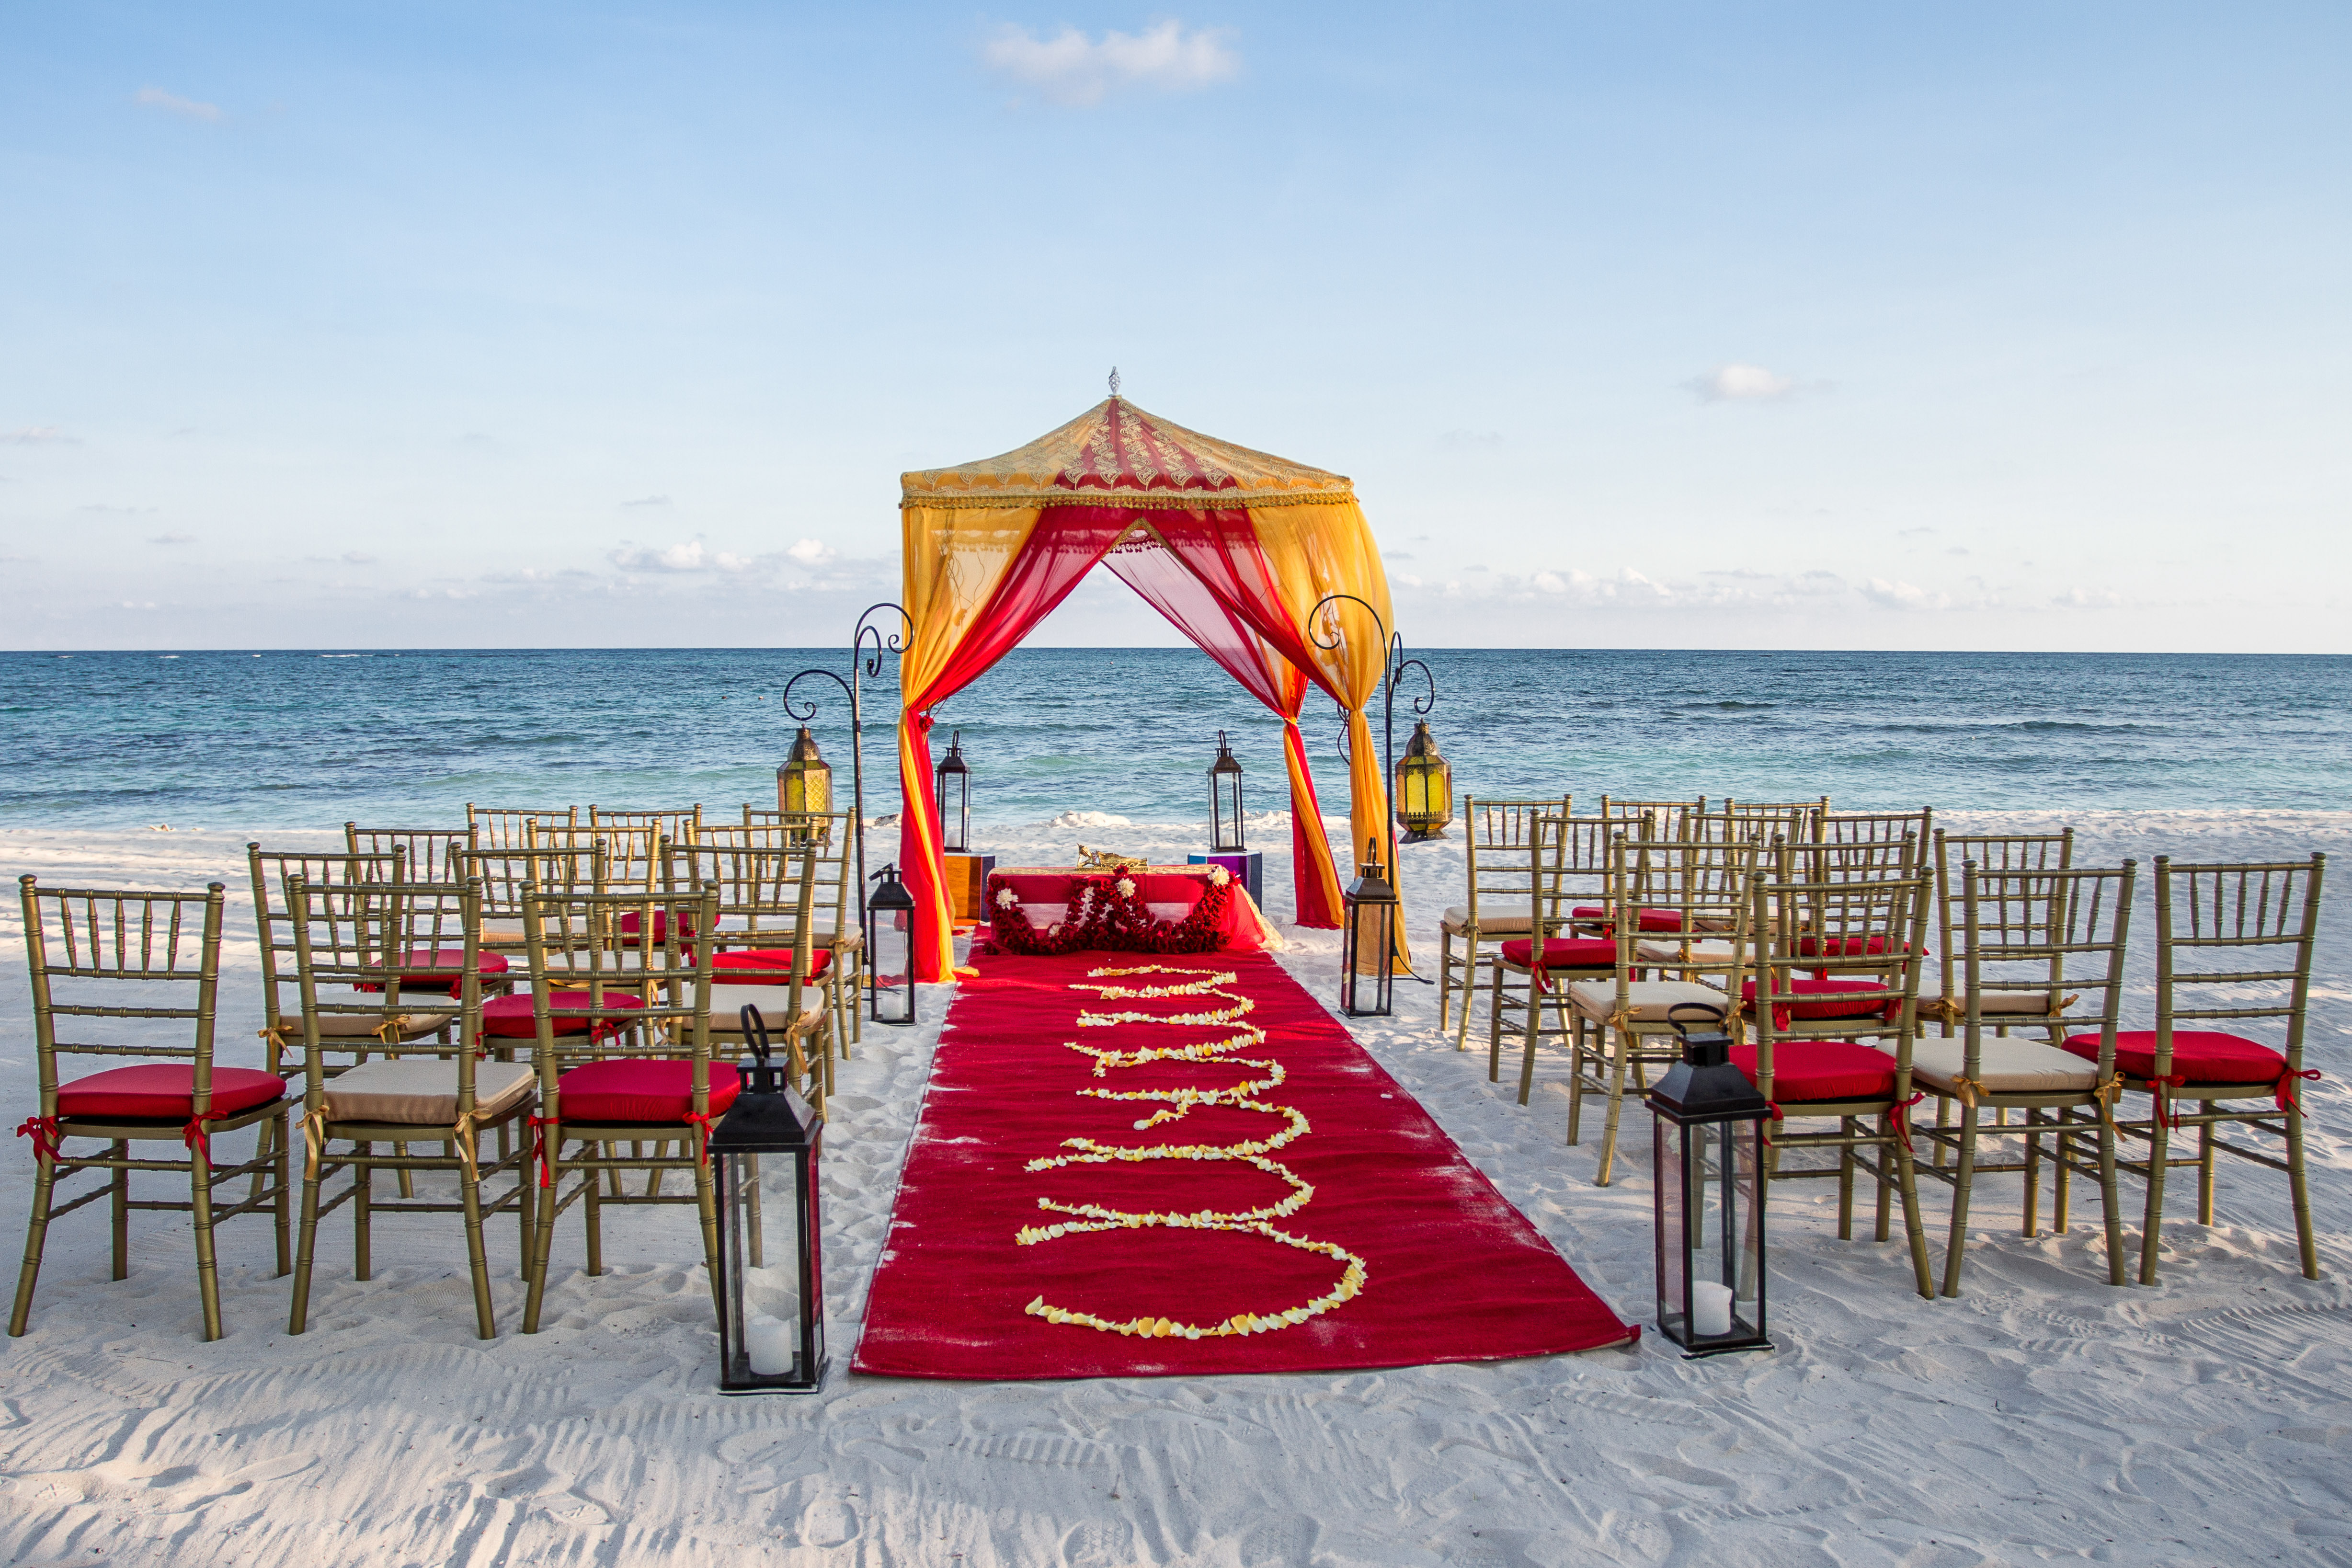 about beach in hindi 50 best beaches in india by atish • 5 years ago 05 feb 2018 1824 shares ping share tweet share (last updated on: february 5, 2018)  harminder bay beach.